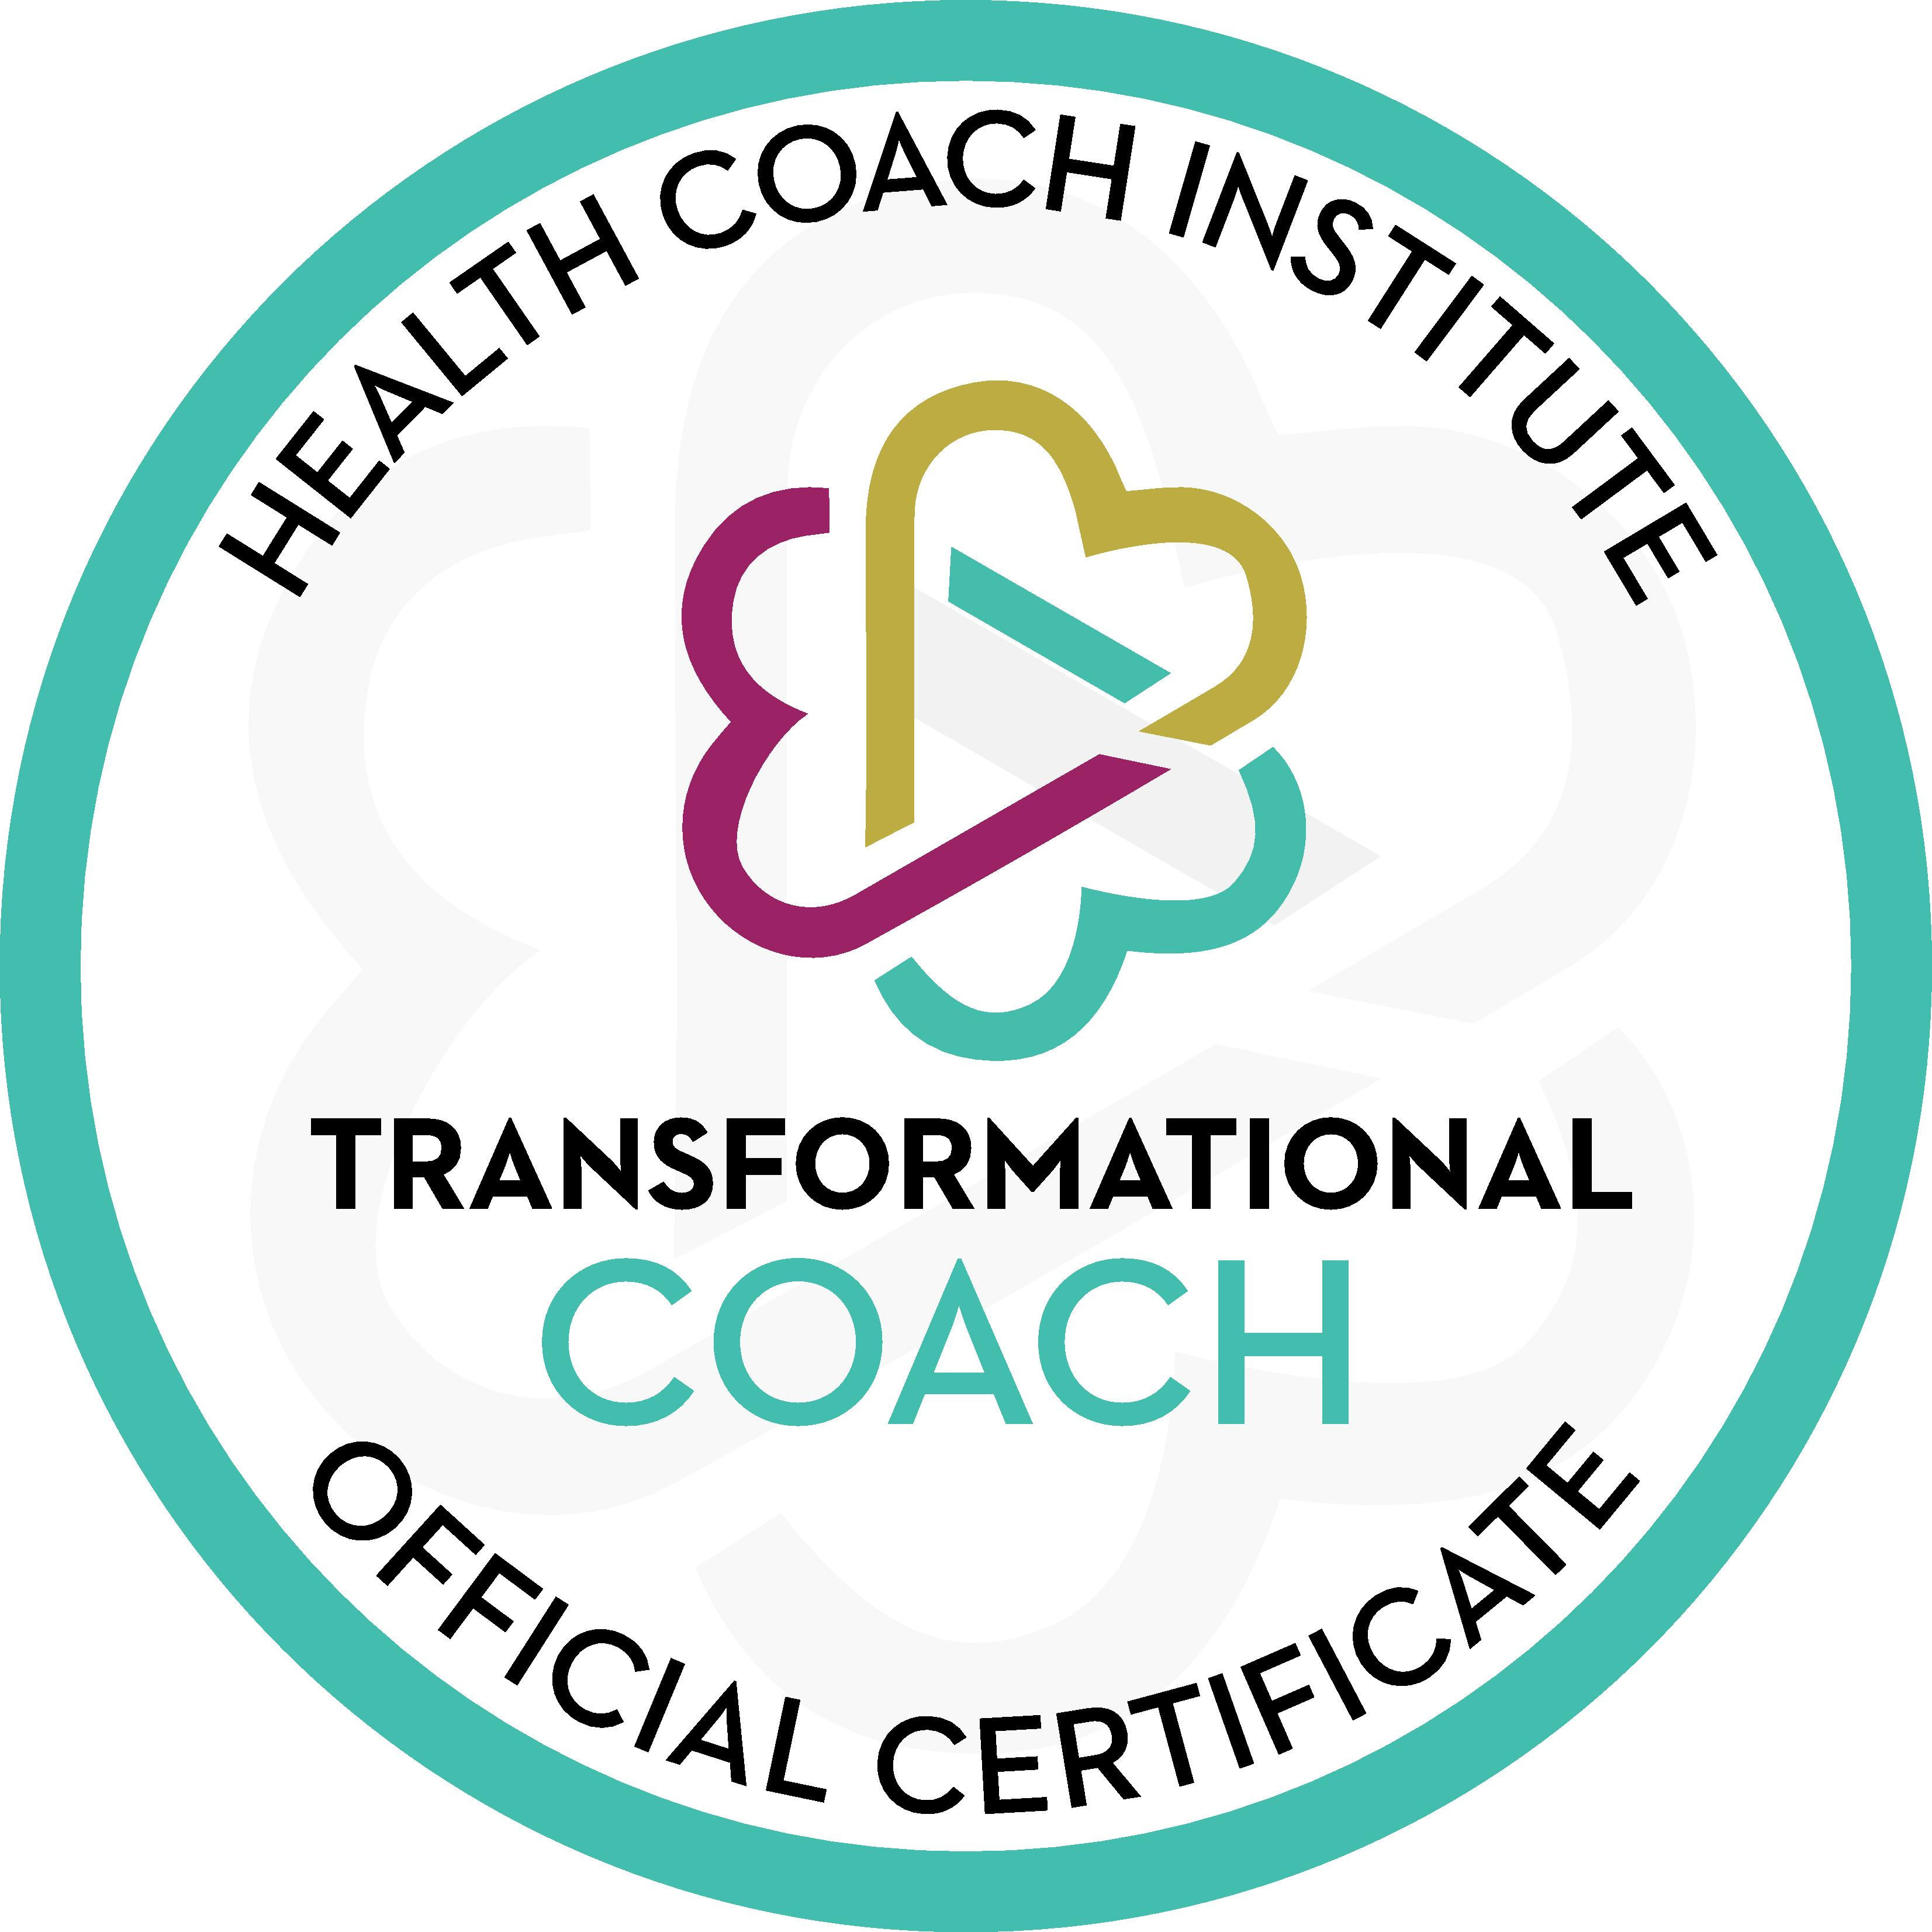 Transformational Coaching Certification Seal